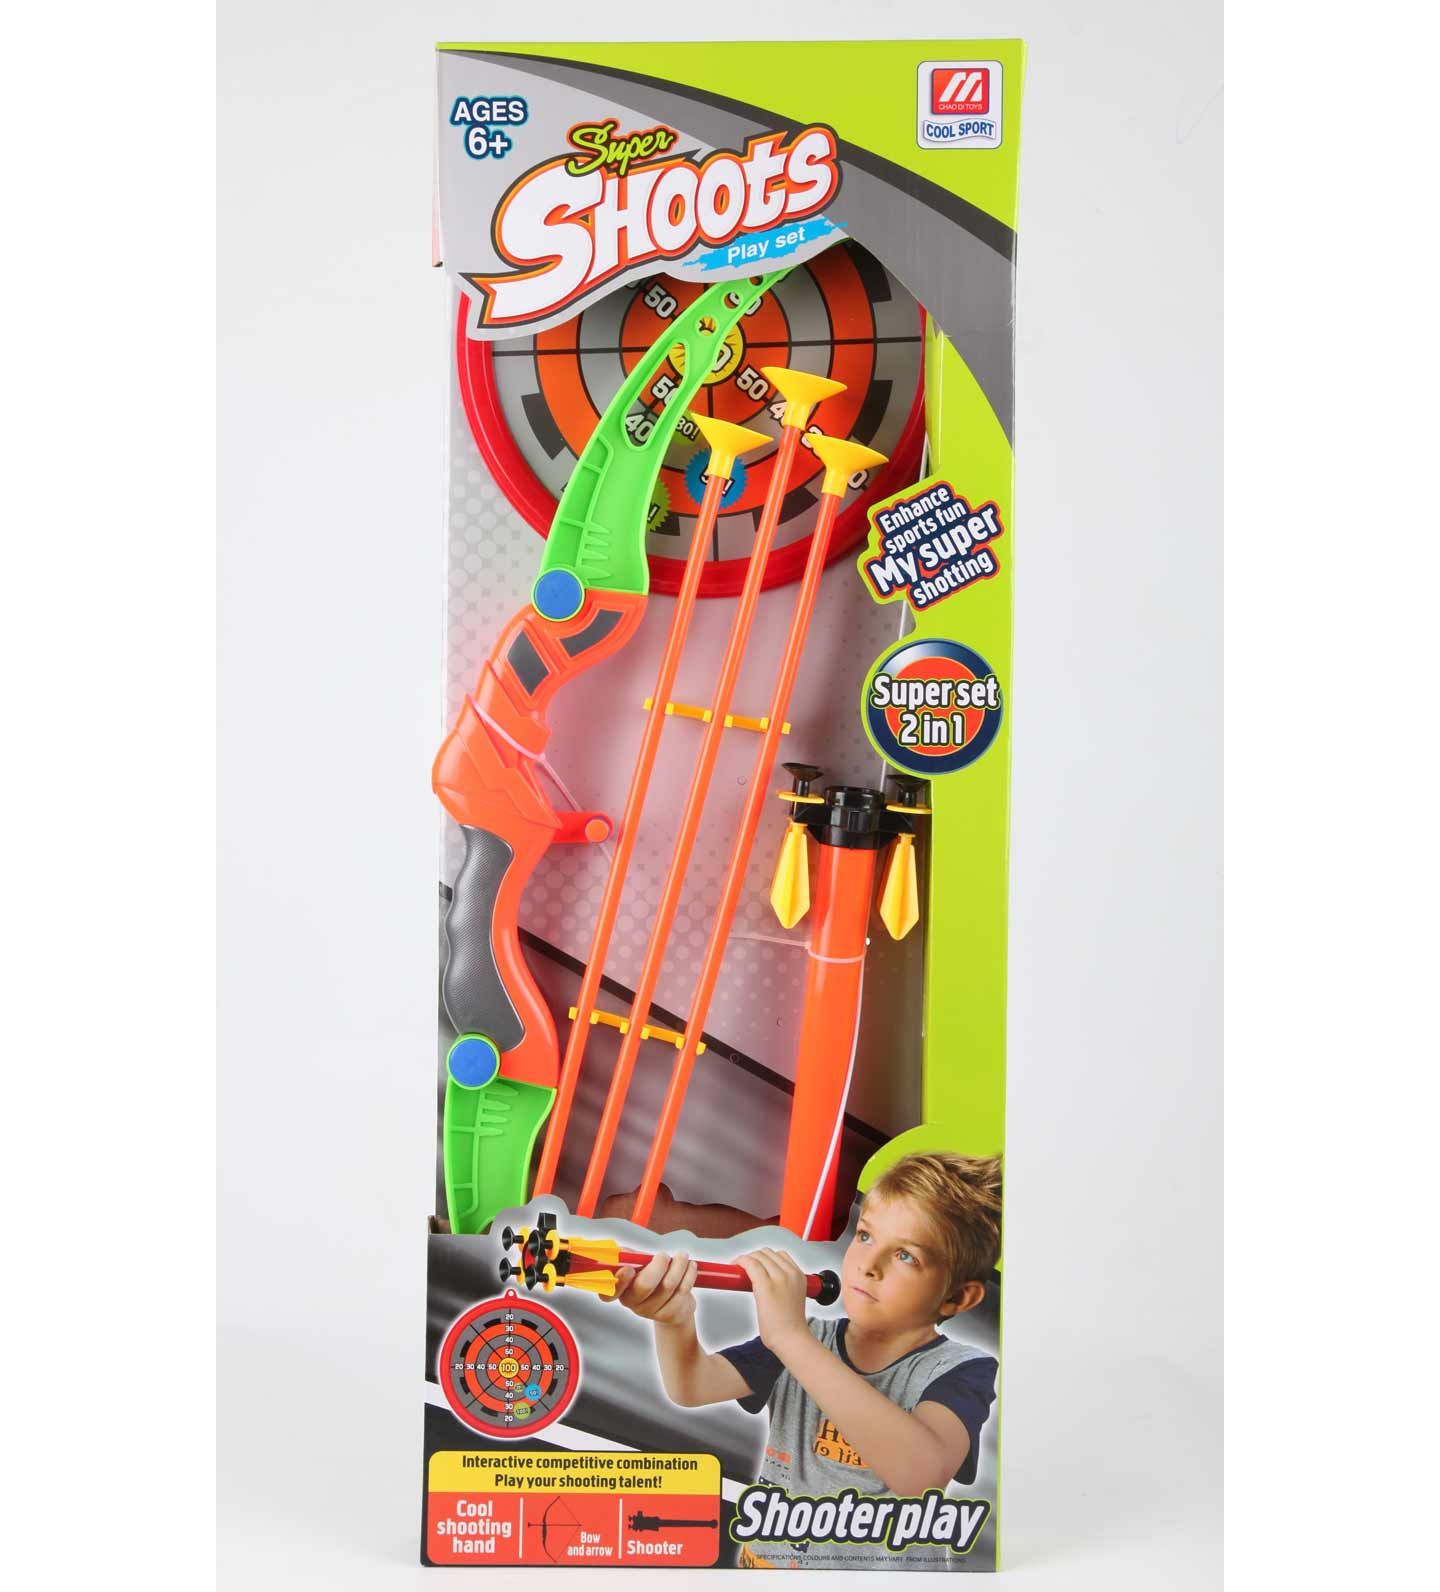 Archery Set With Shooter Archery Set For Kids To Play Outdoors In The  Garden, Backyard Or Parks. 3 Suction Arrows Is Safe For Kids To Play With.